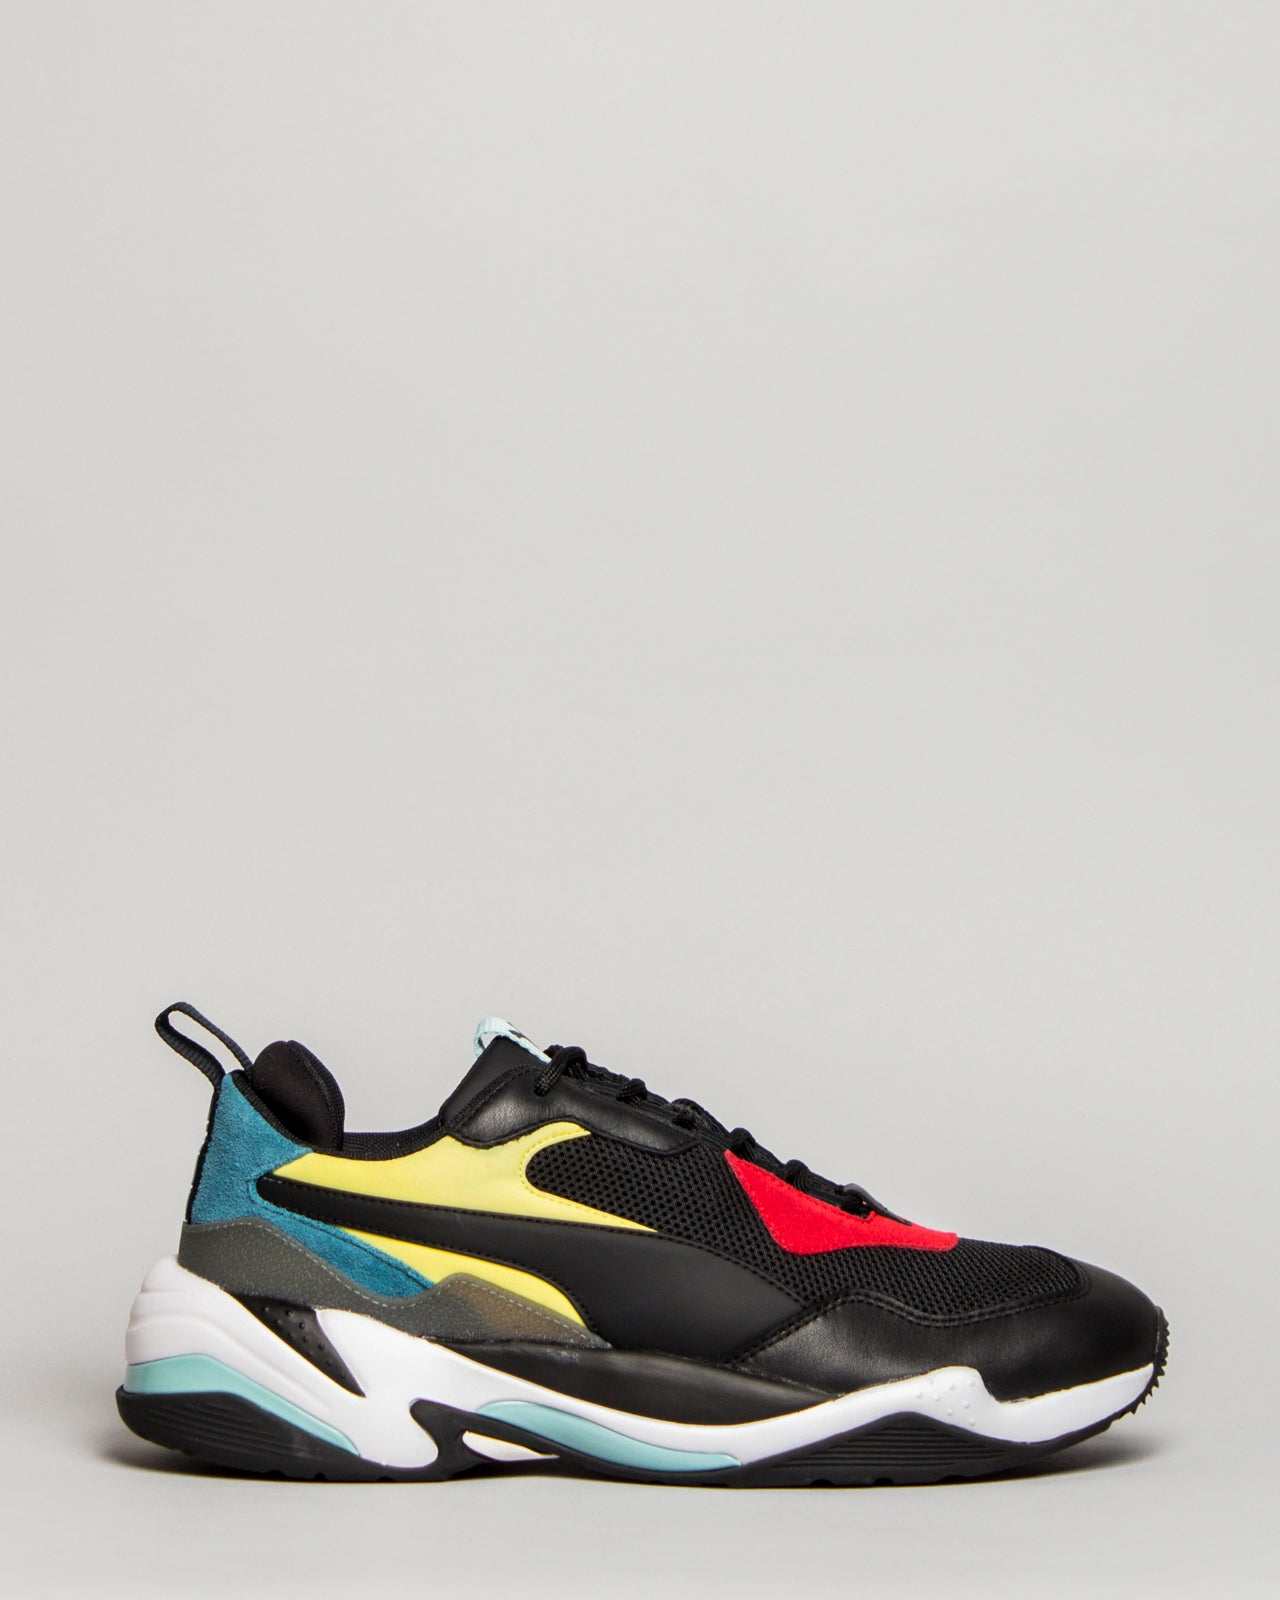 Thunder Spectra Black/Black/White